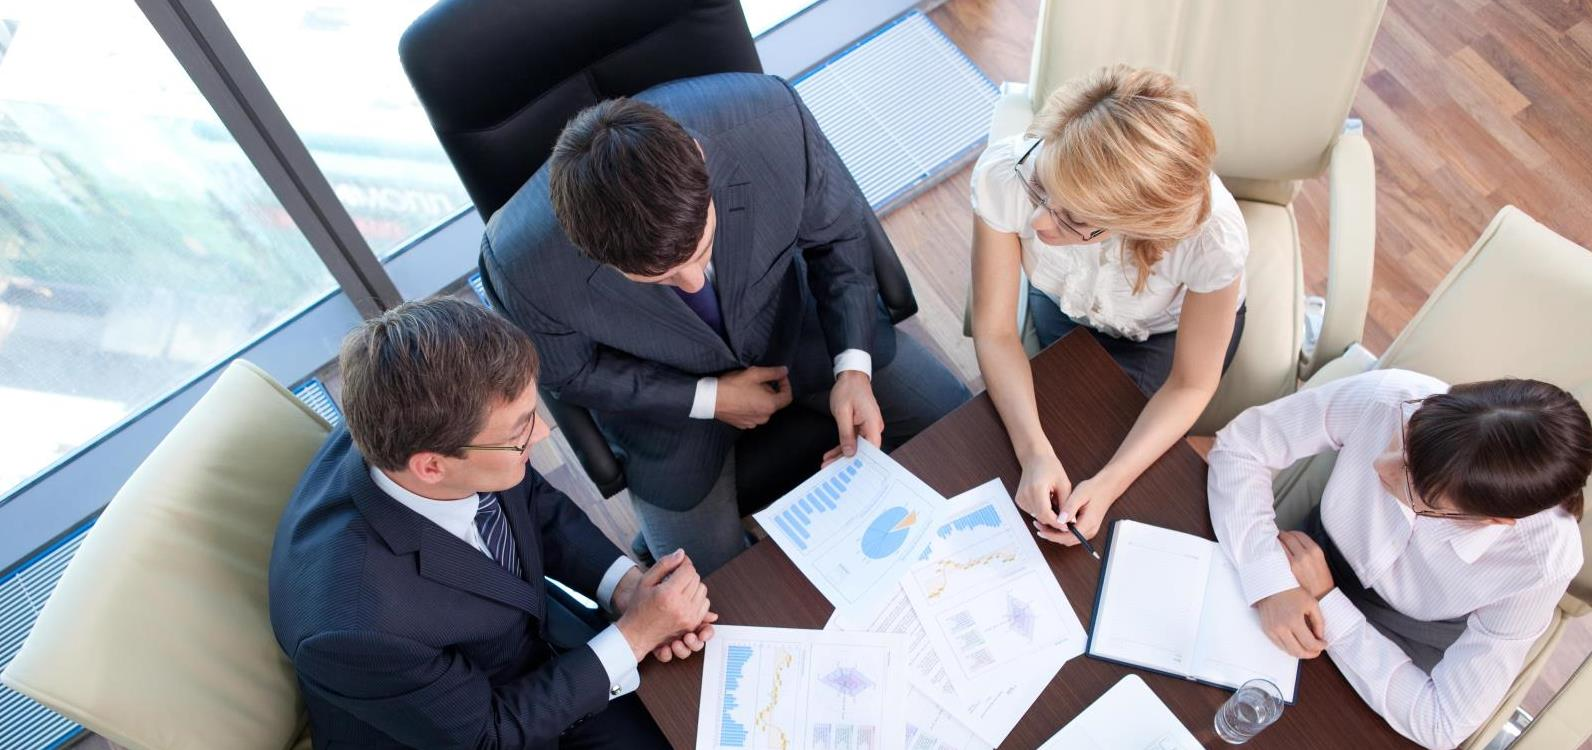 Top down view of a group of consultants at a meeting table with papers and graphs in front of them